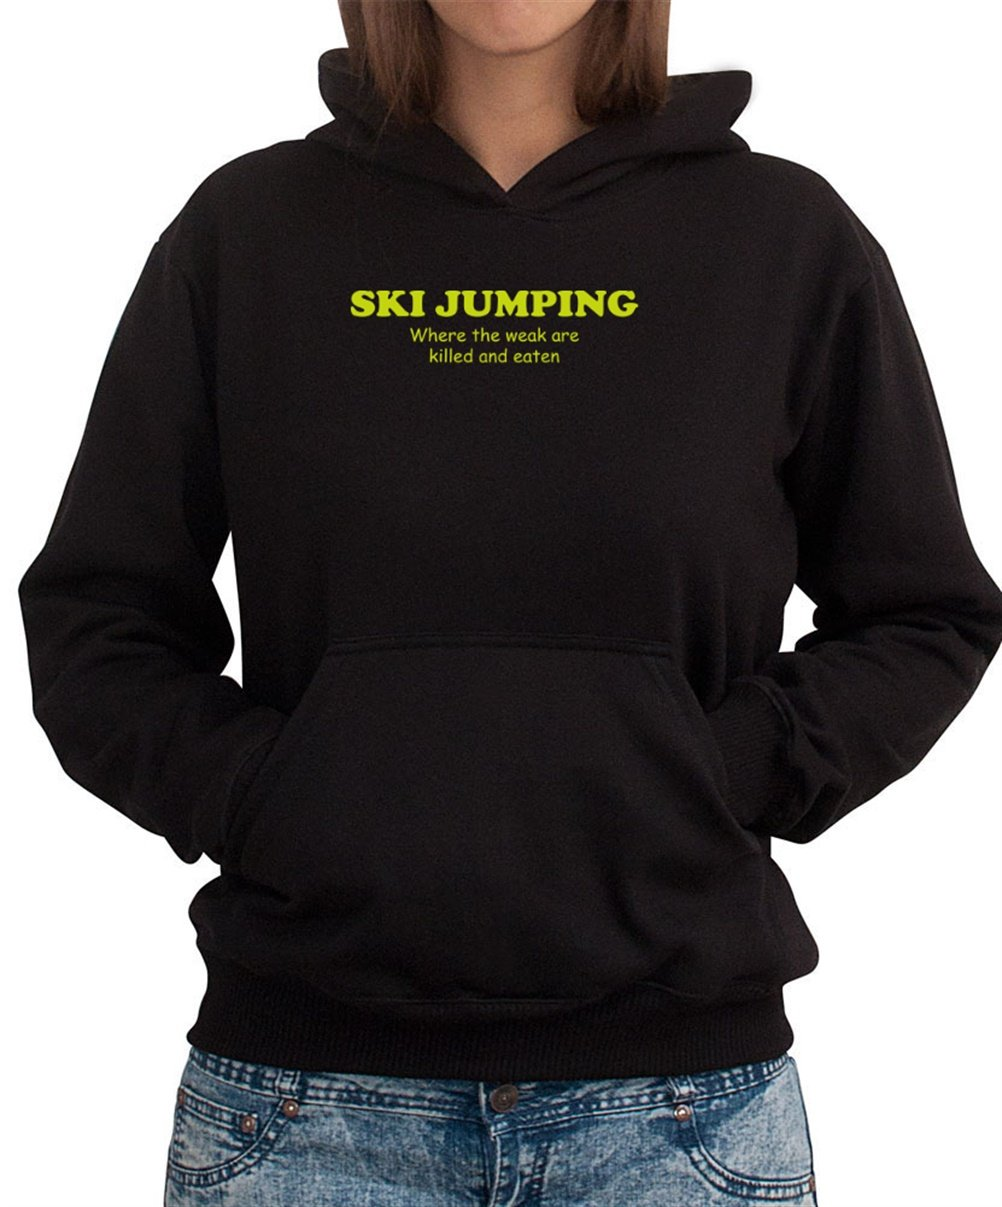 Ski Jumping WHERE THE WEAK ARE KILLED AND EATEN Women Dame Hoodie